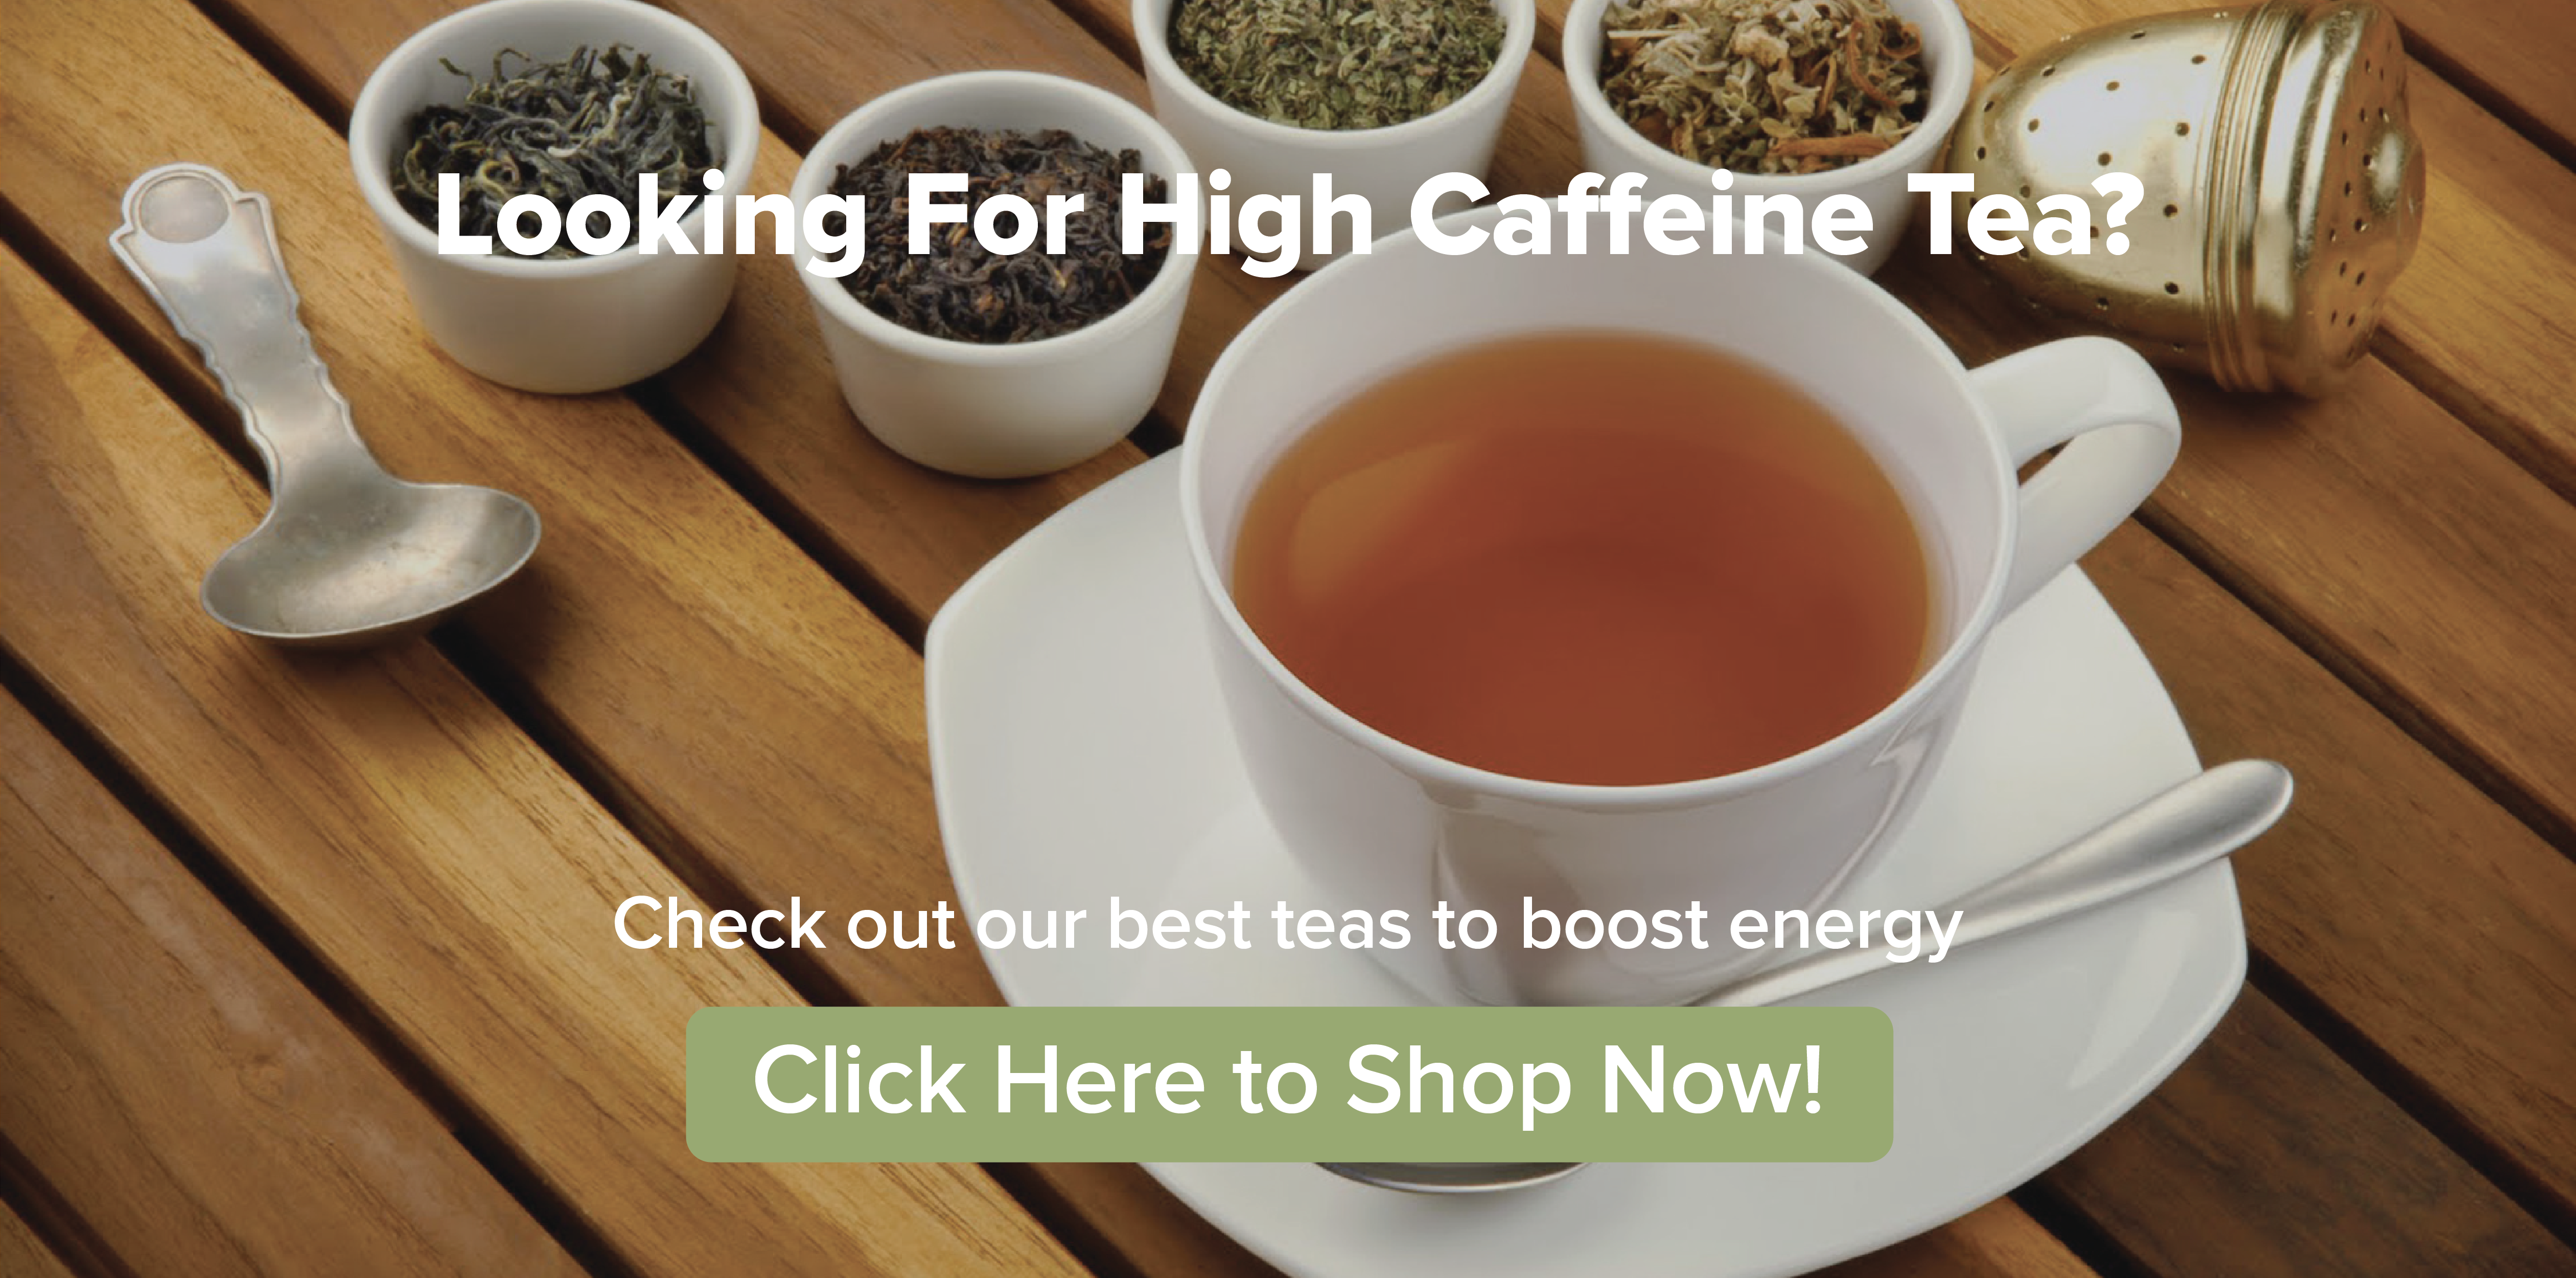 Why You Should Start Your Day With High Caffeine Tea Instead of